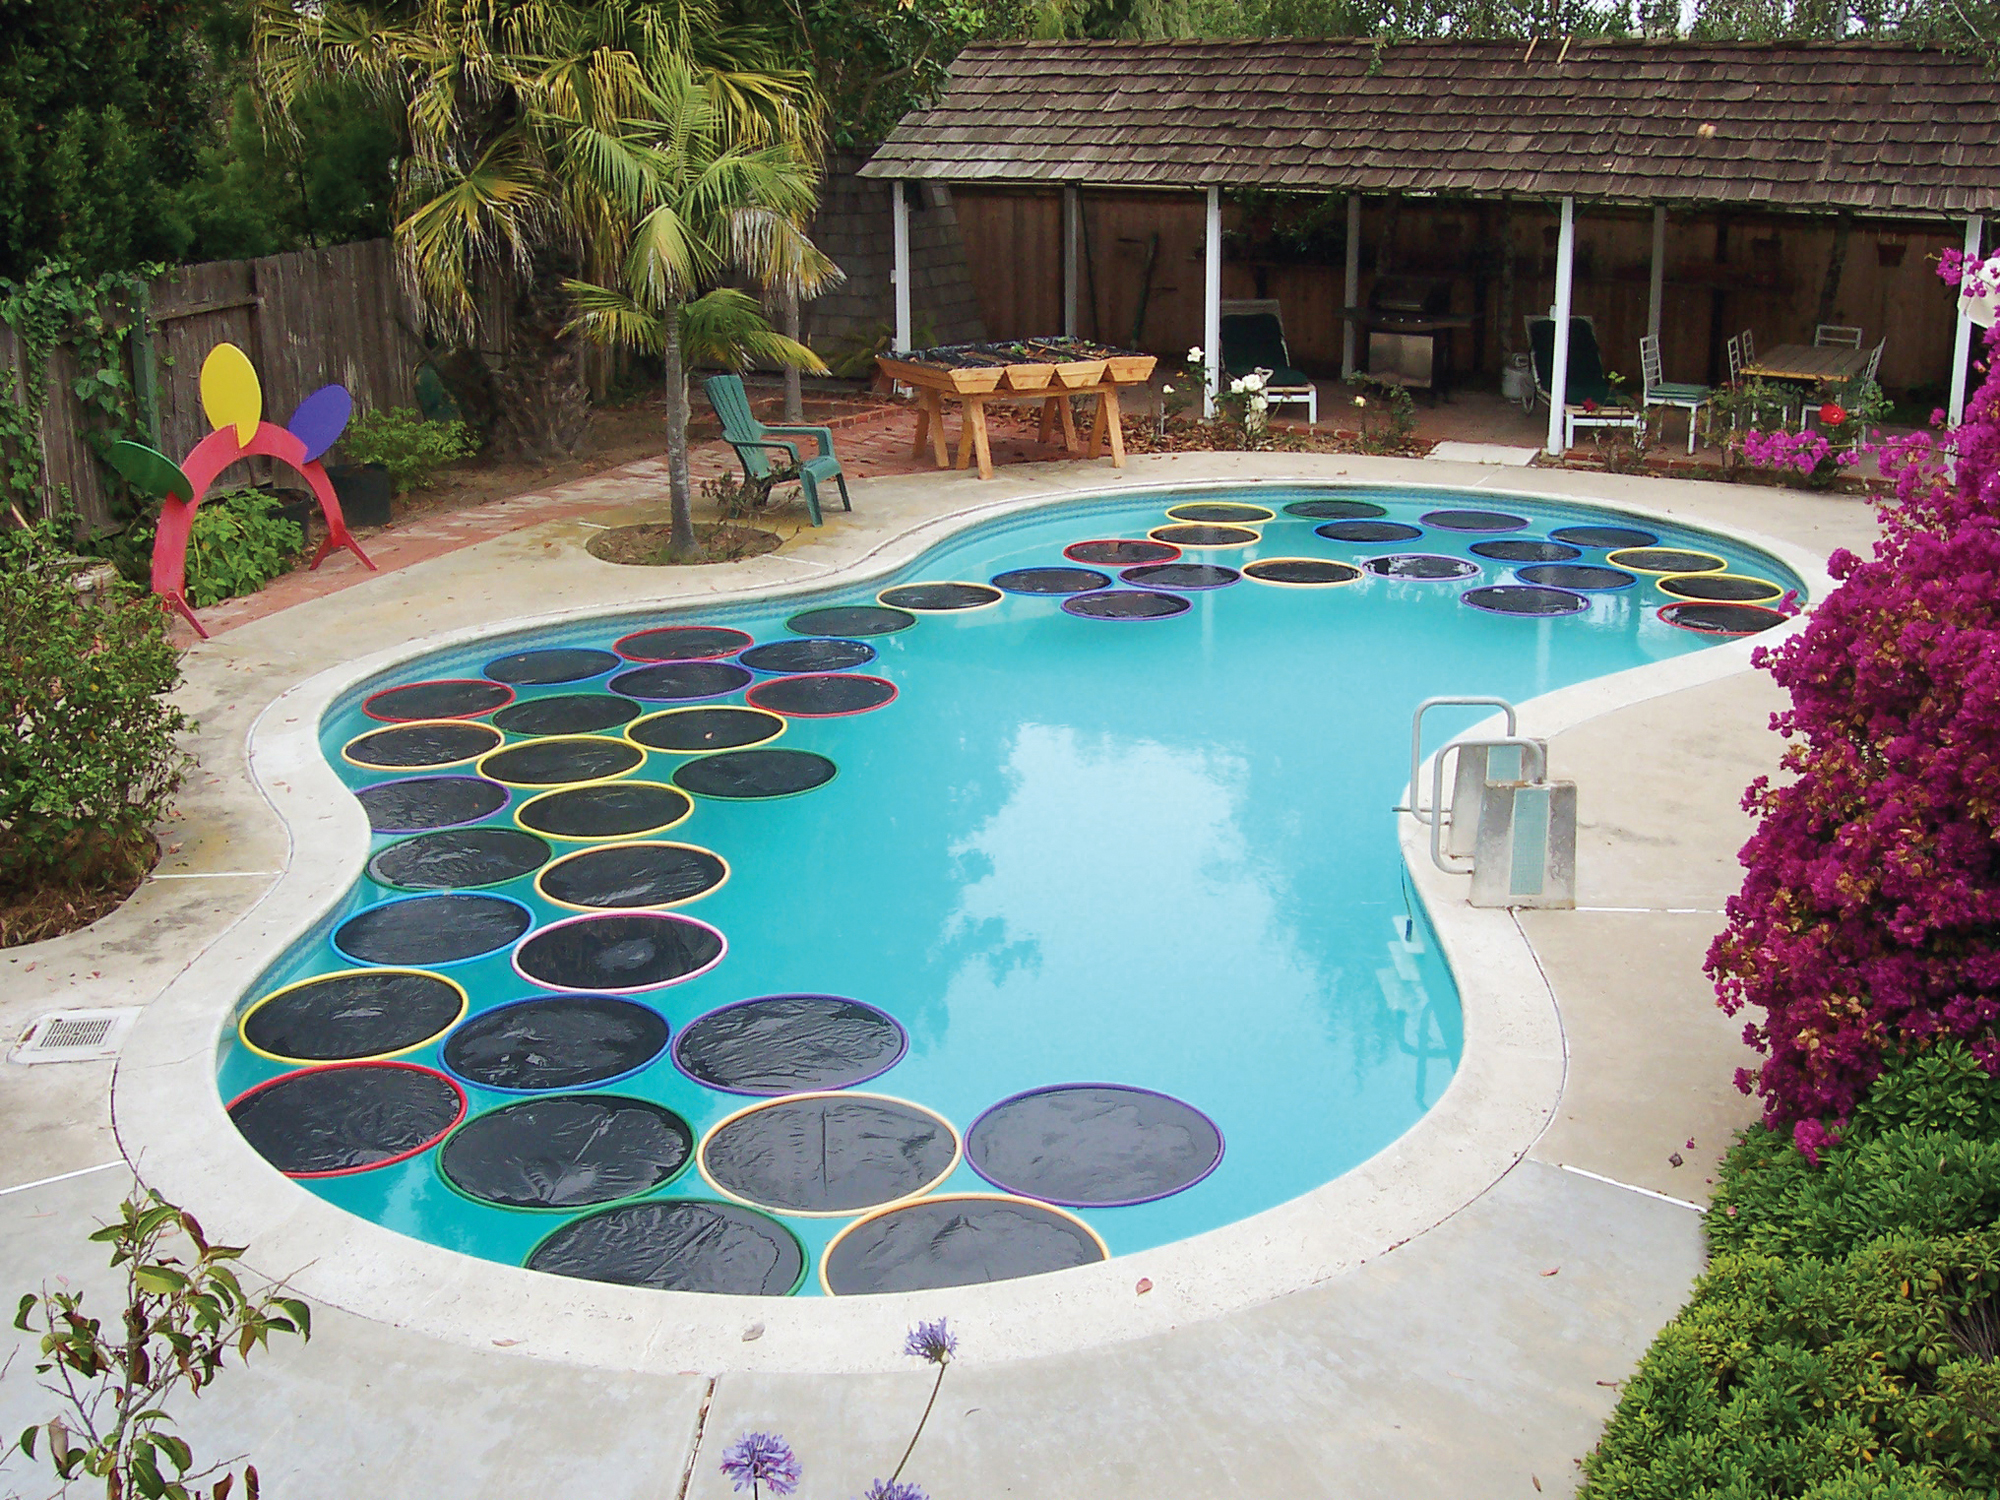 lily pad pool warmers make